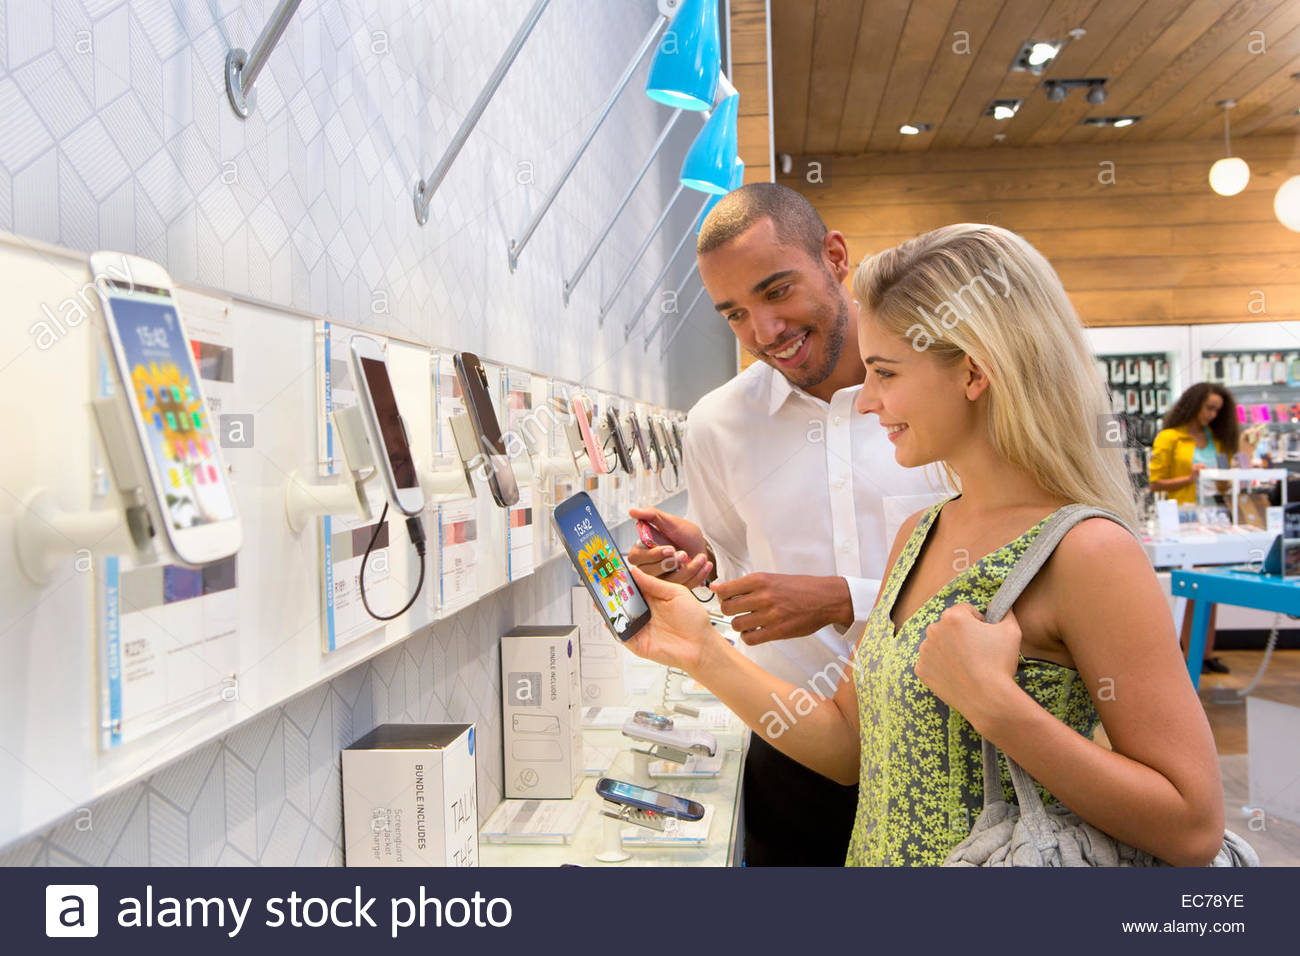 Store manager assisting customer in phone store - Stock Image